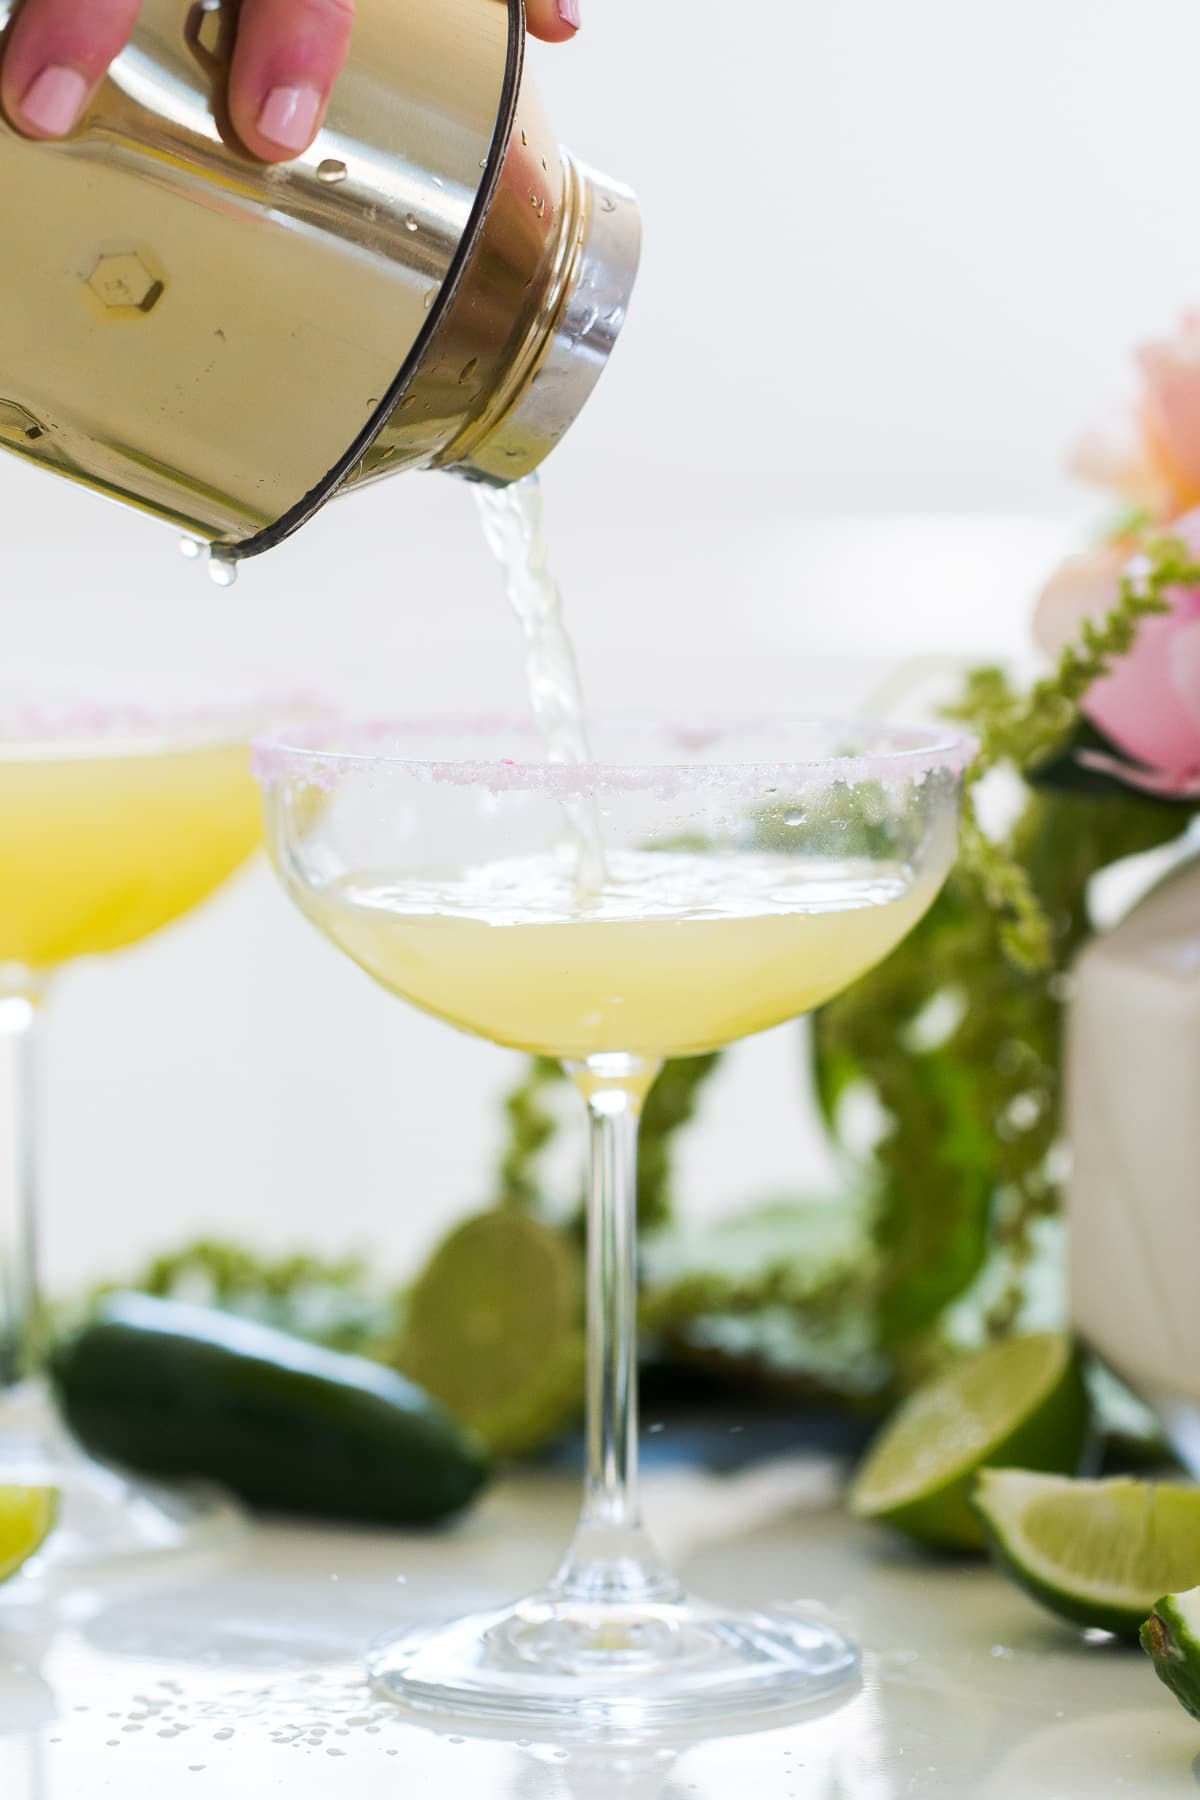 A Skinny Jalapeno Margarita recipe for Cinco de Mayo by top Houston lifestyle blogger Ashley Rose of Sugar & Cloth